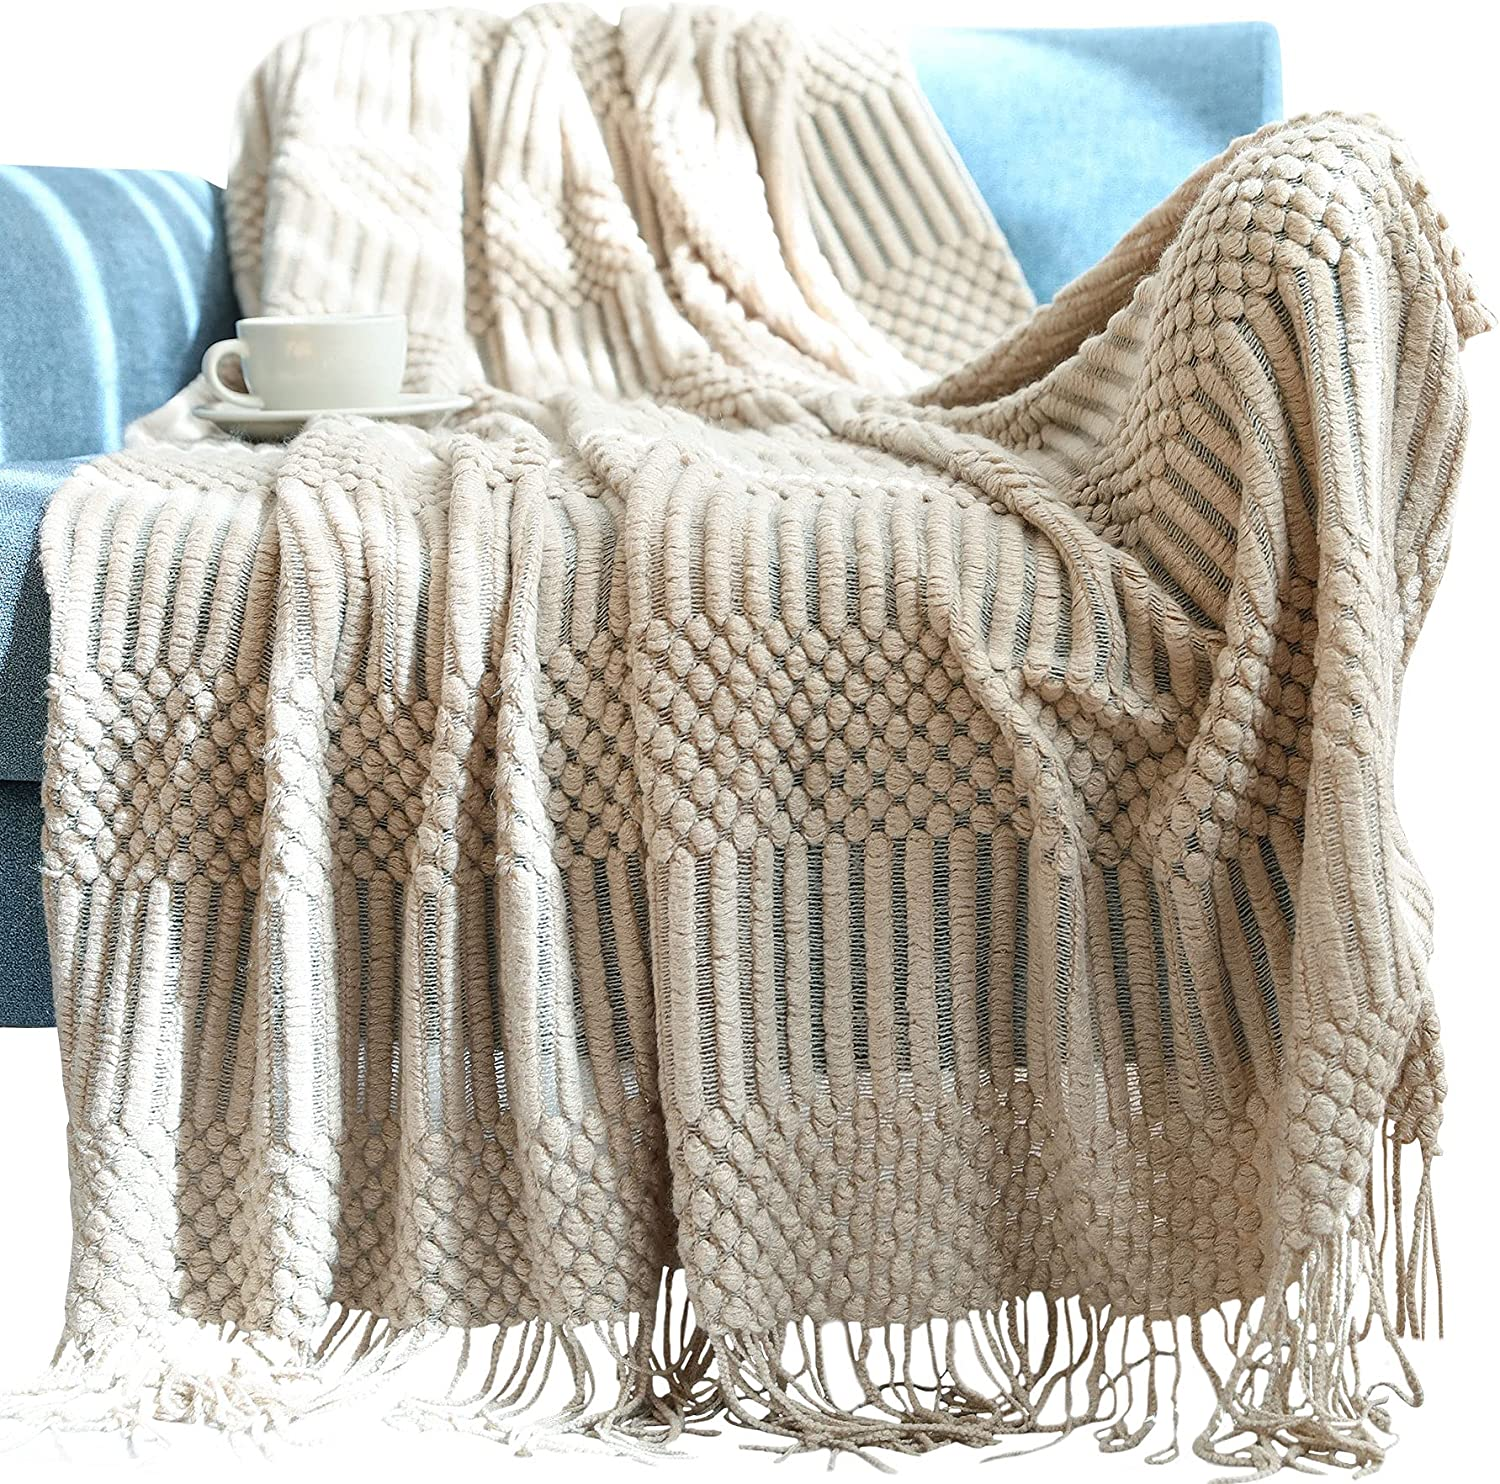 Avitalk Stylish Knitted Blanket with Tassels T Soft National uniform free Large special price !! shipping Cozy